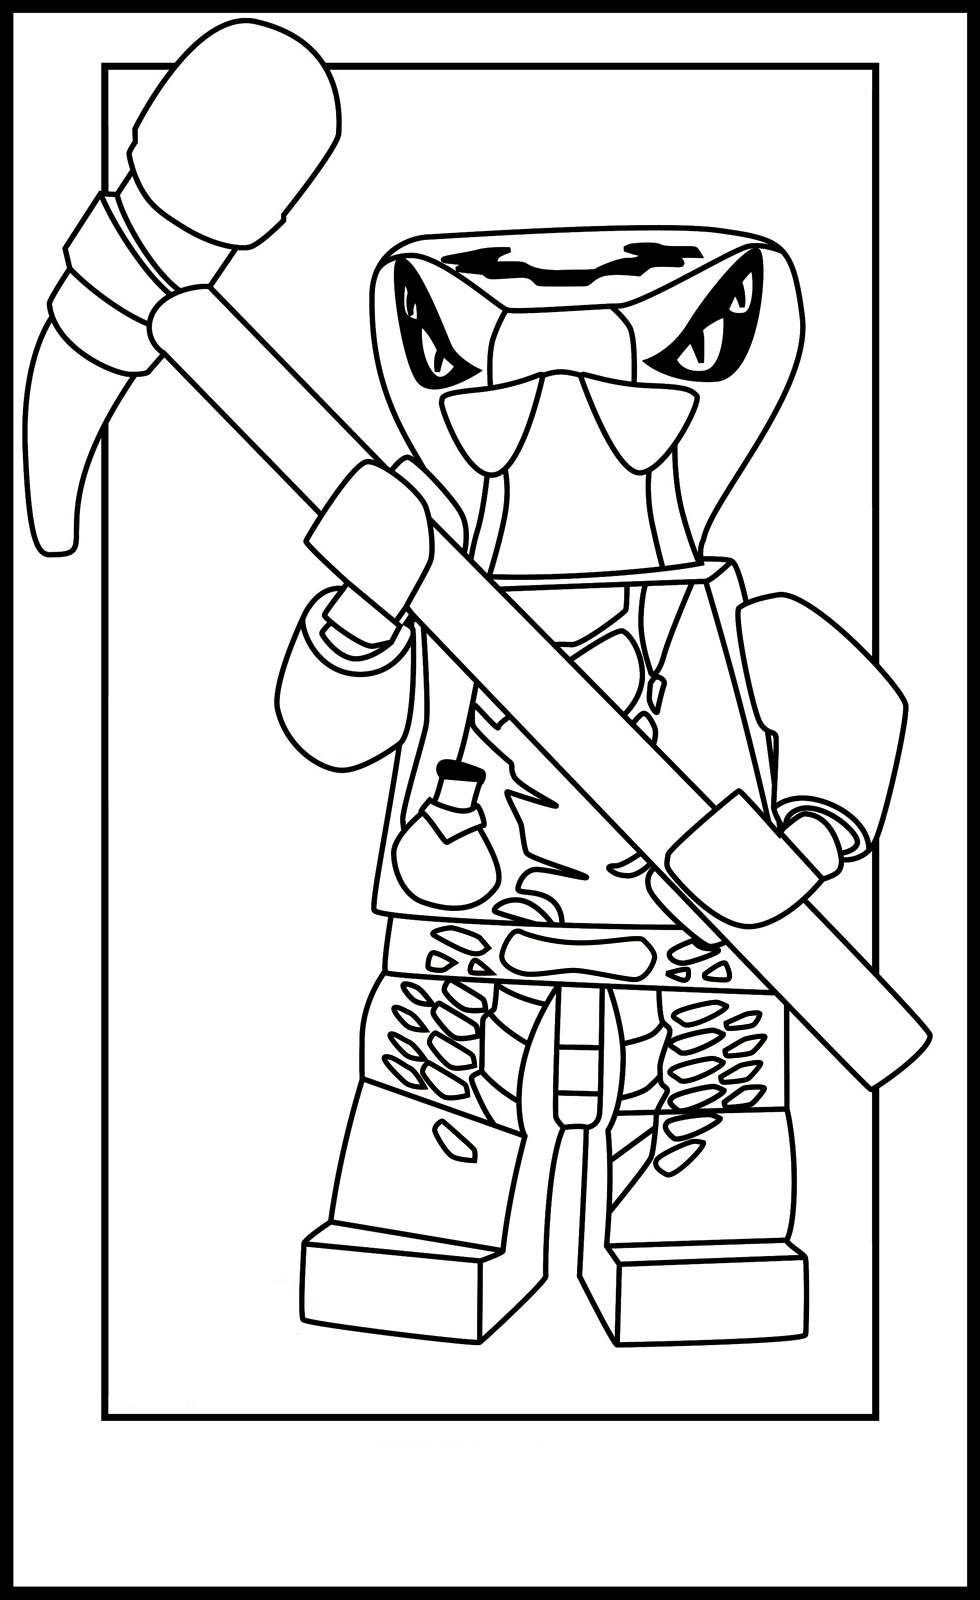 Cole ninjago coloring games online for kids - Download Ninjago Free Coloring Pages